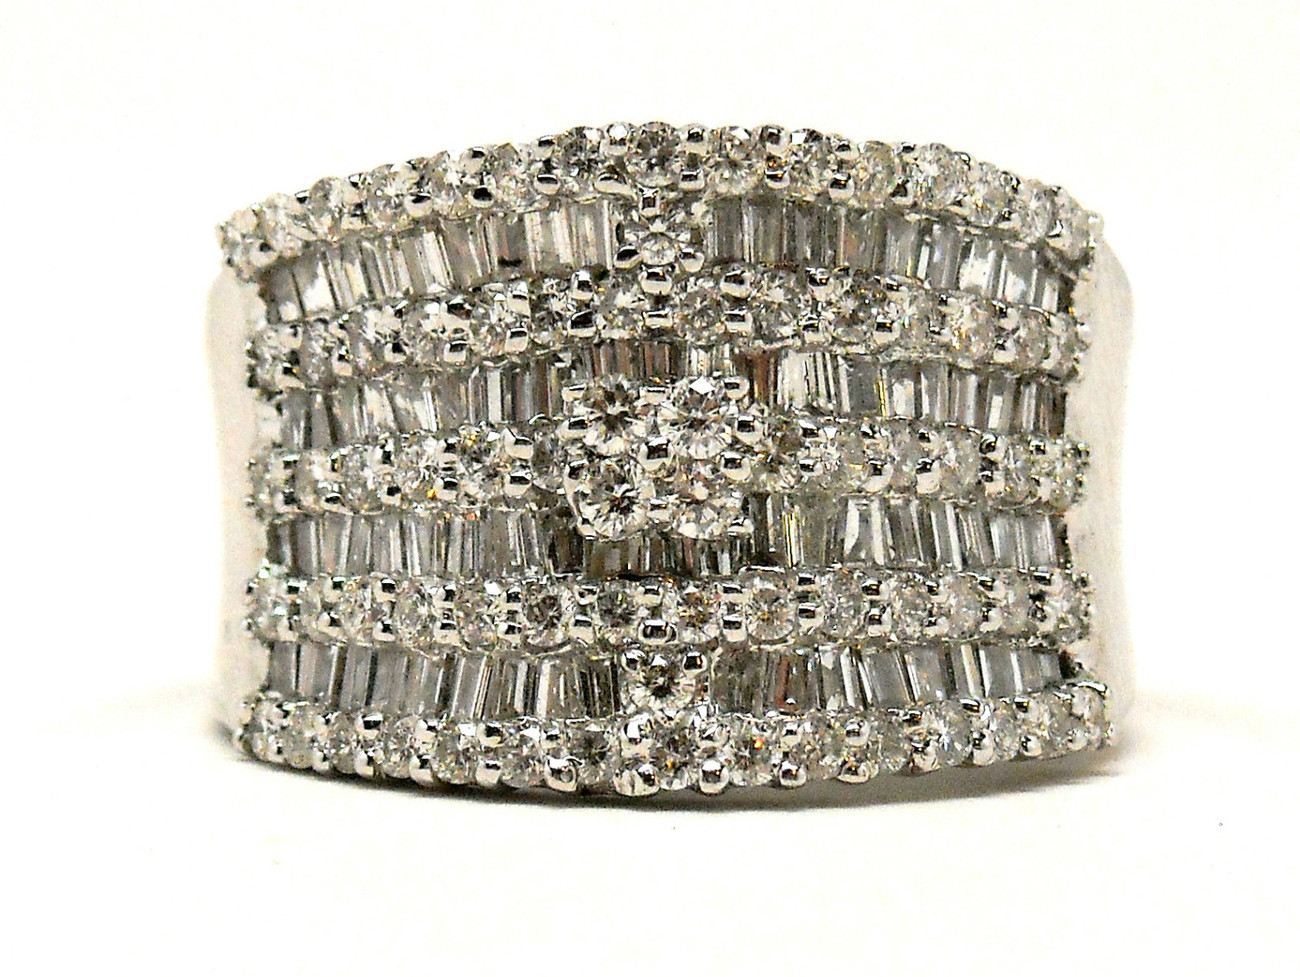 NEW 14K White Gold Diamond Wedding Band Ring 2.05 cts Size 6.5 Retail $4,350